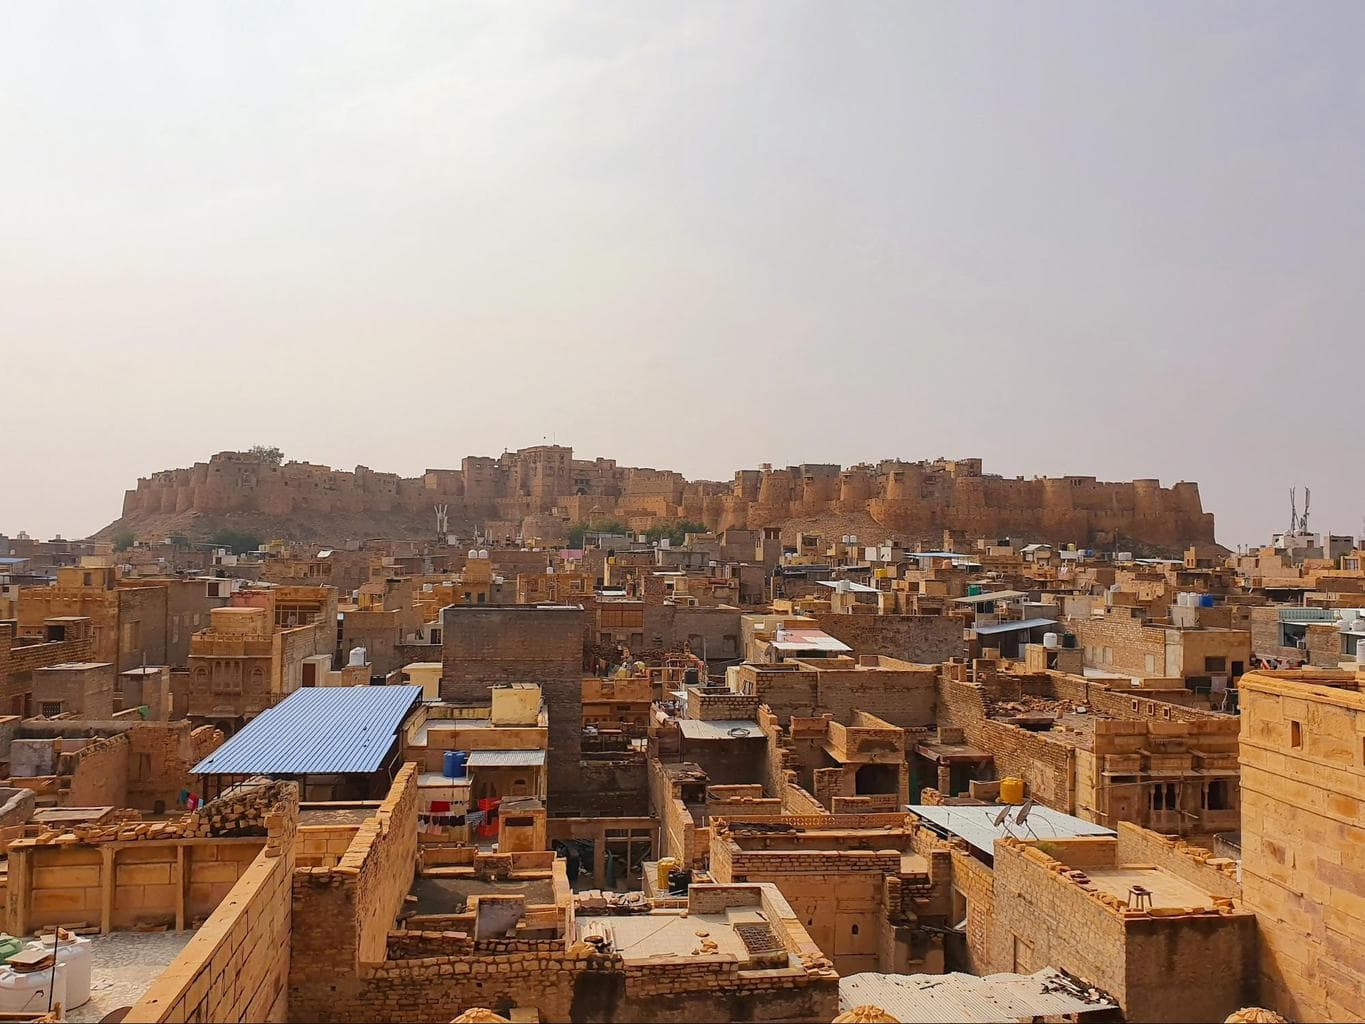 Jaisalmer Fort as seen from Patwon Ki Haveli